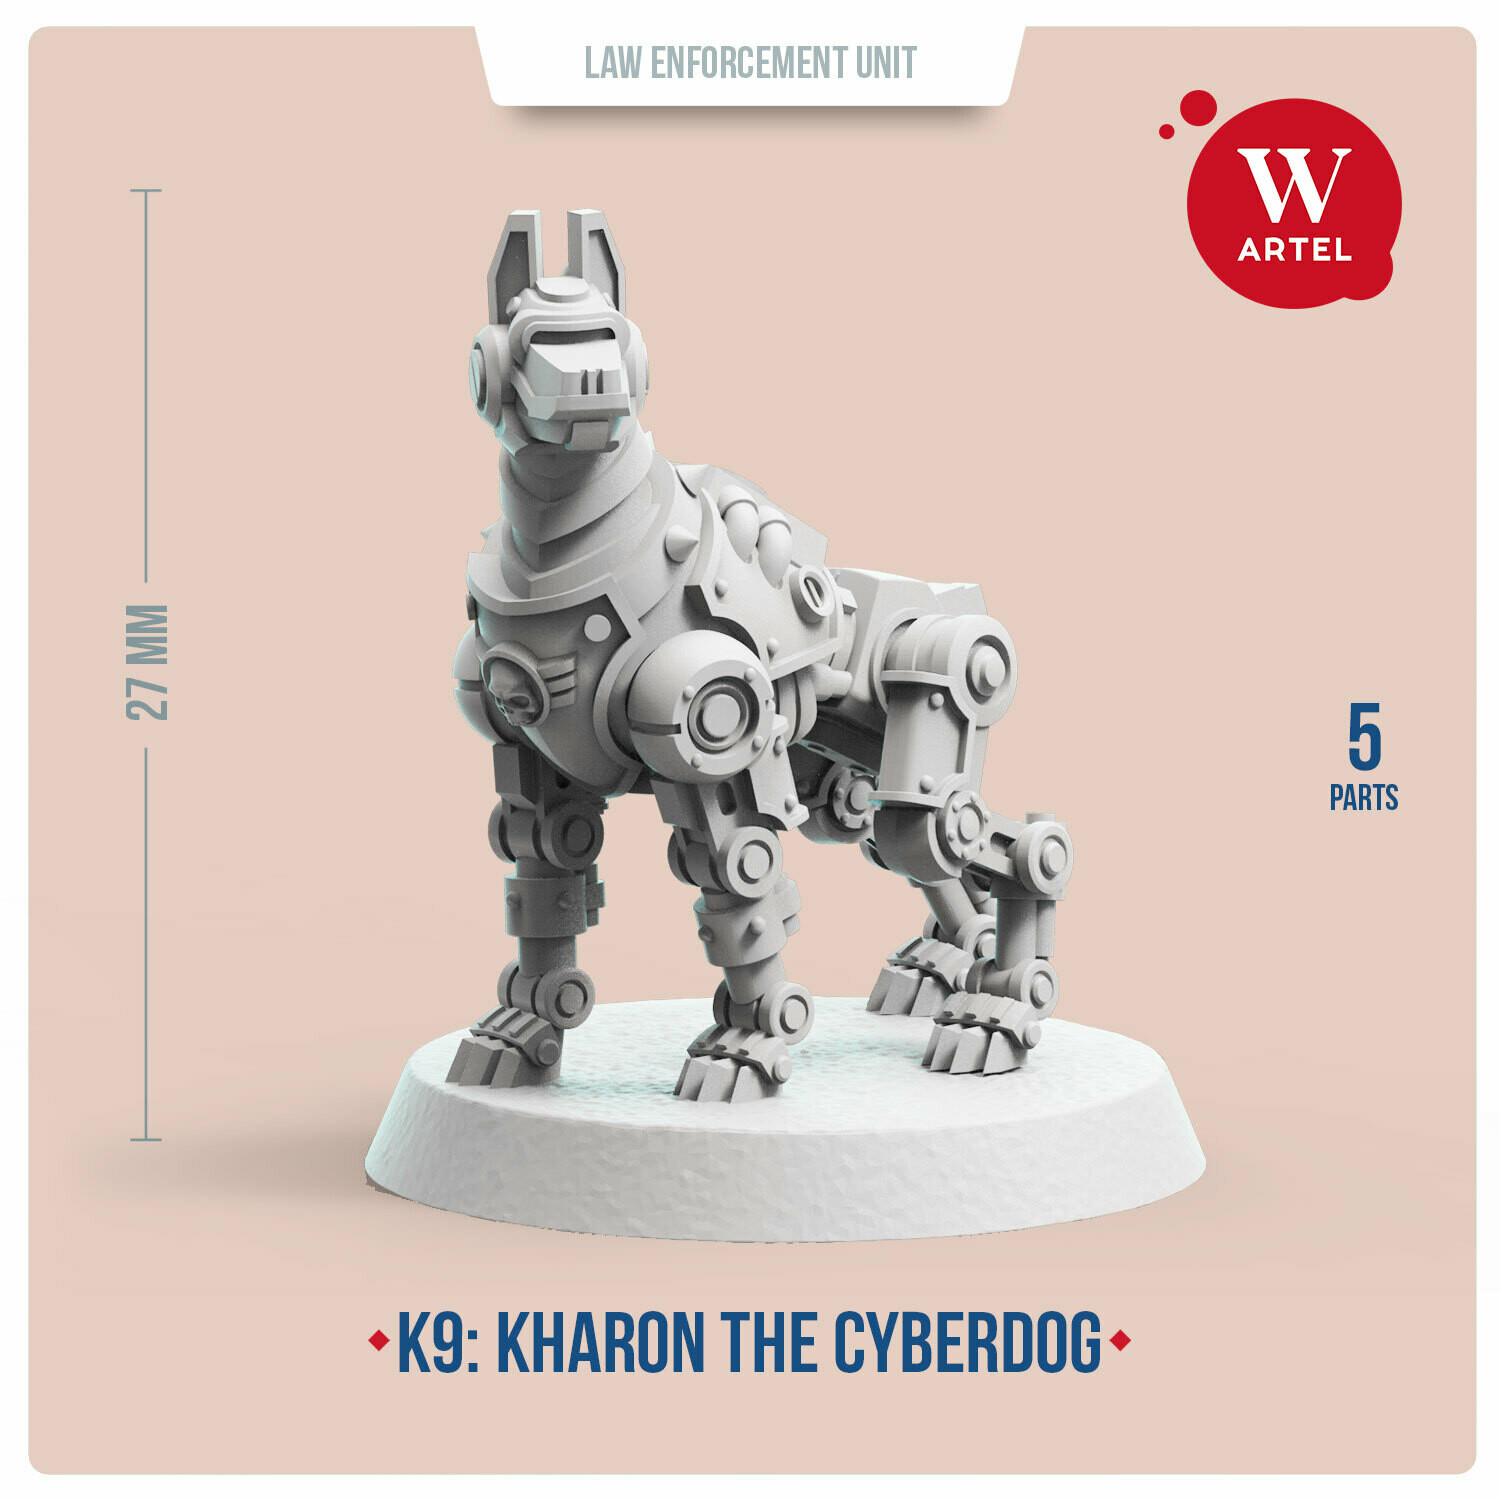 K9: Kharon the Cyberdog